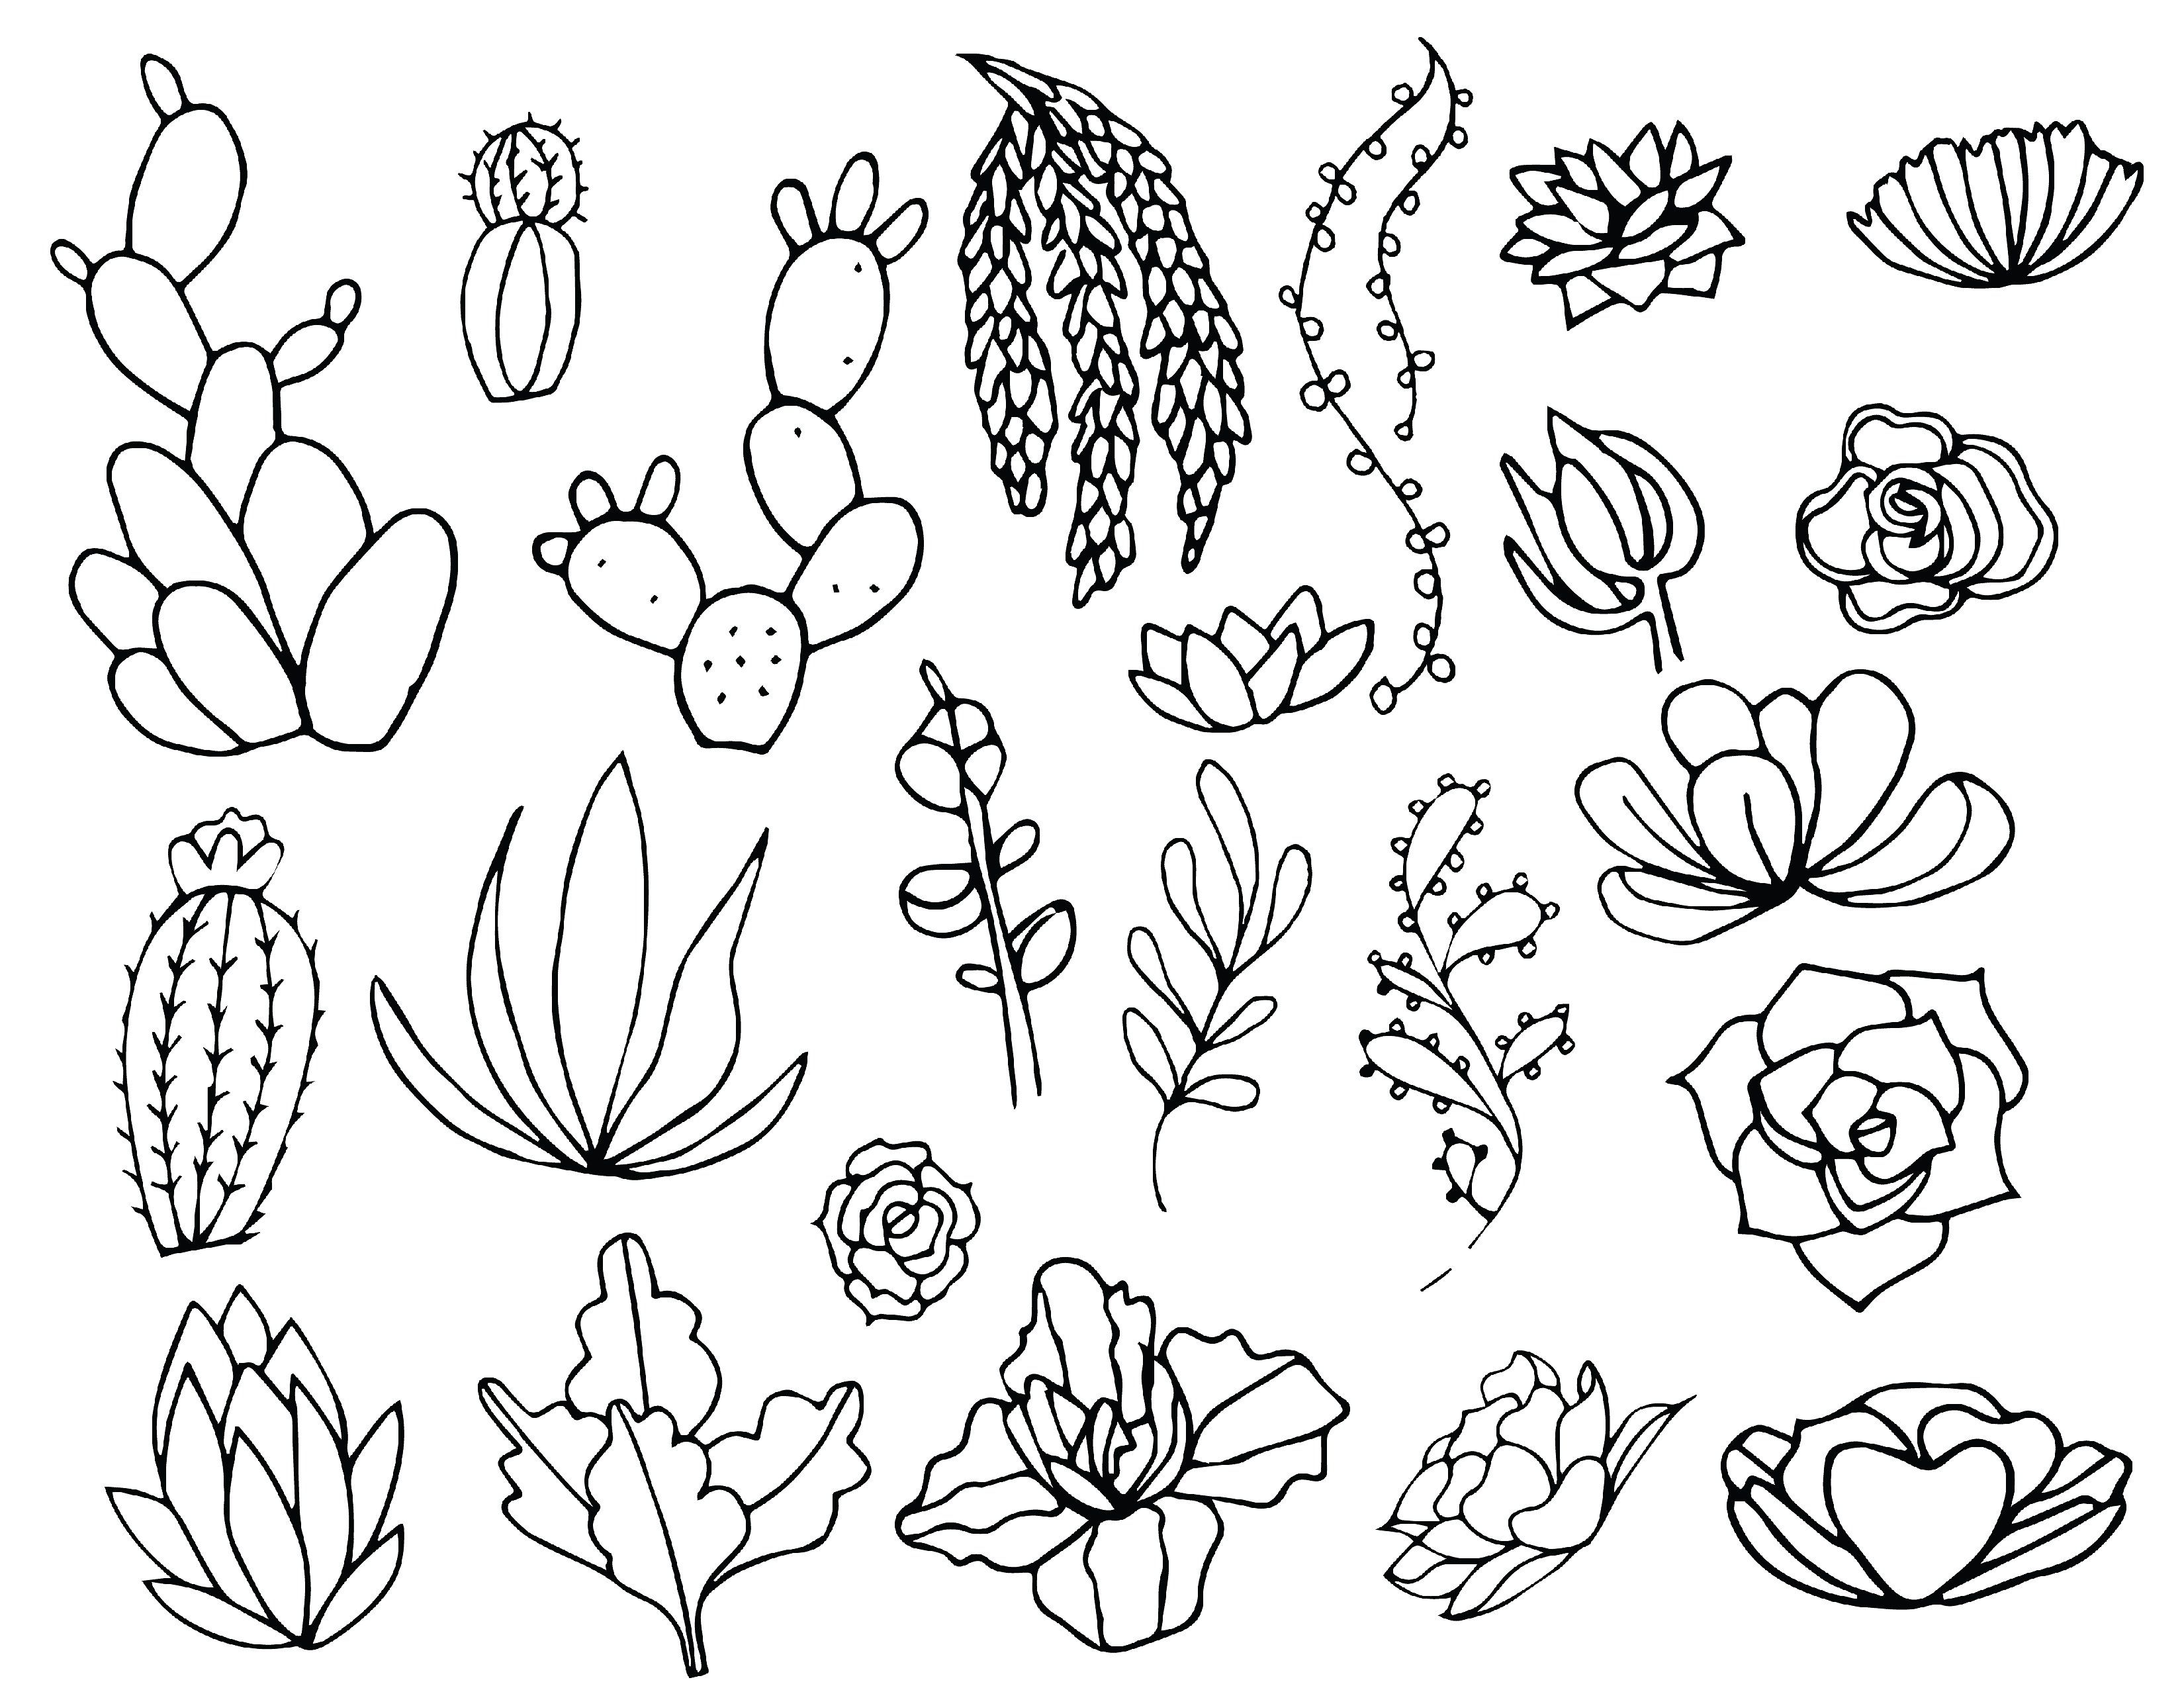 Pin on Drawings  Cactus Flower Outline